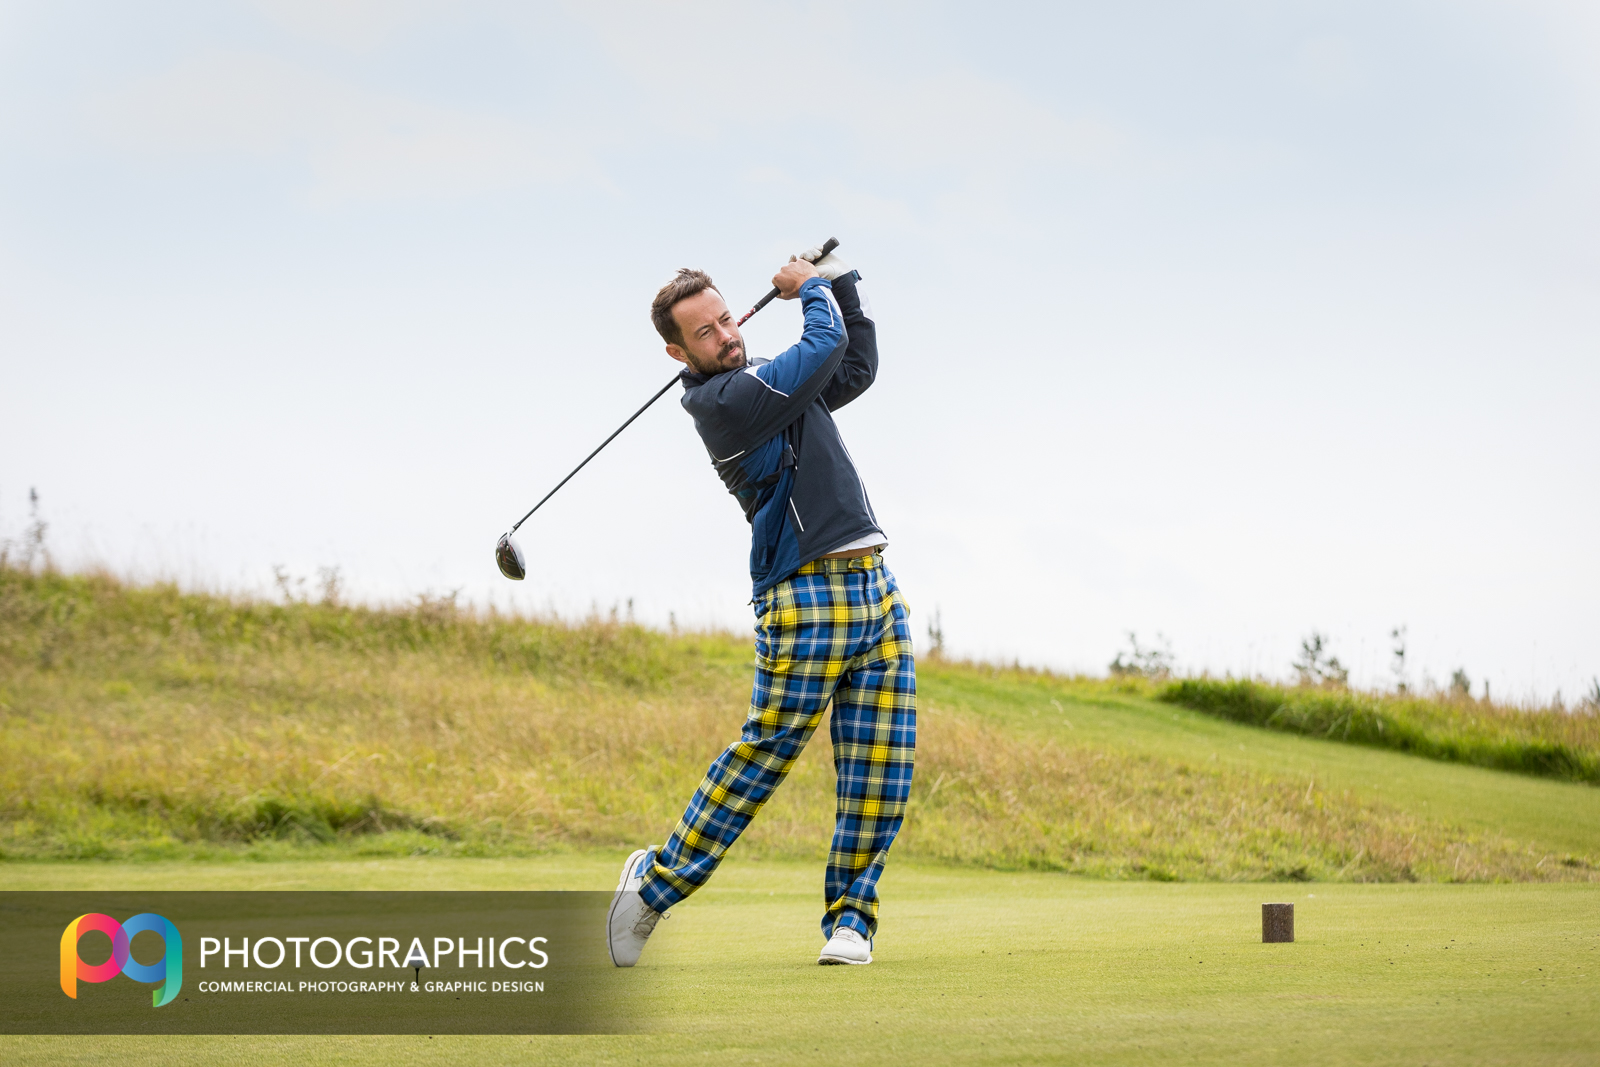 charity-golf-pr-event-photography-glasgow-edinburgh-scotland-18.jpg